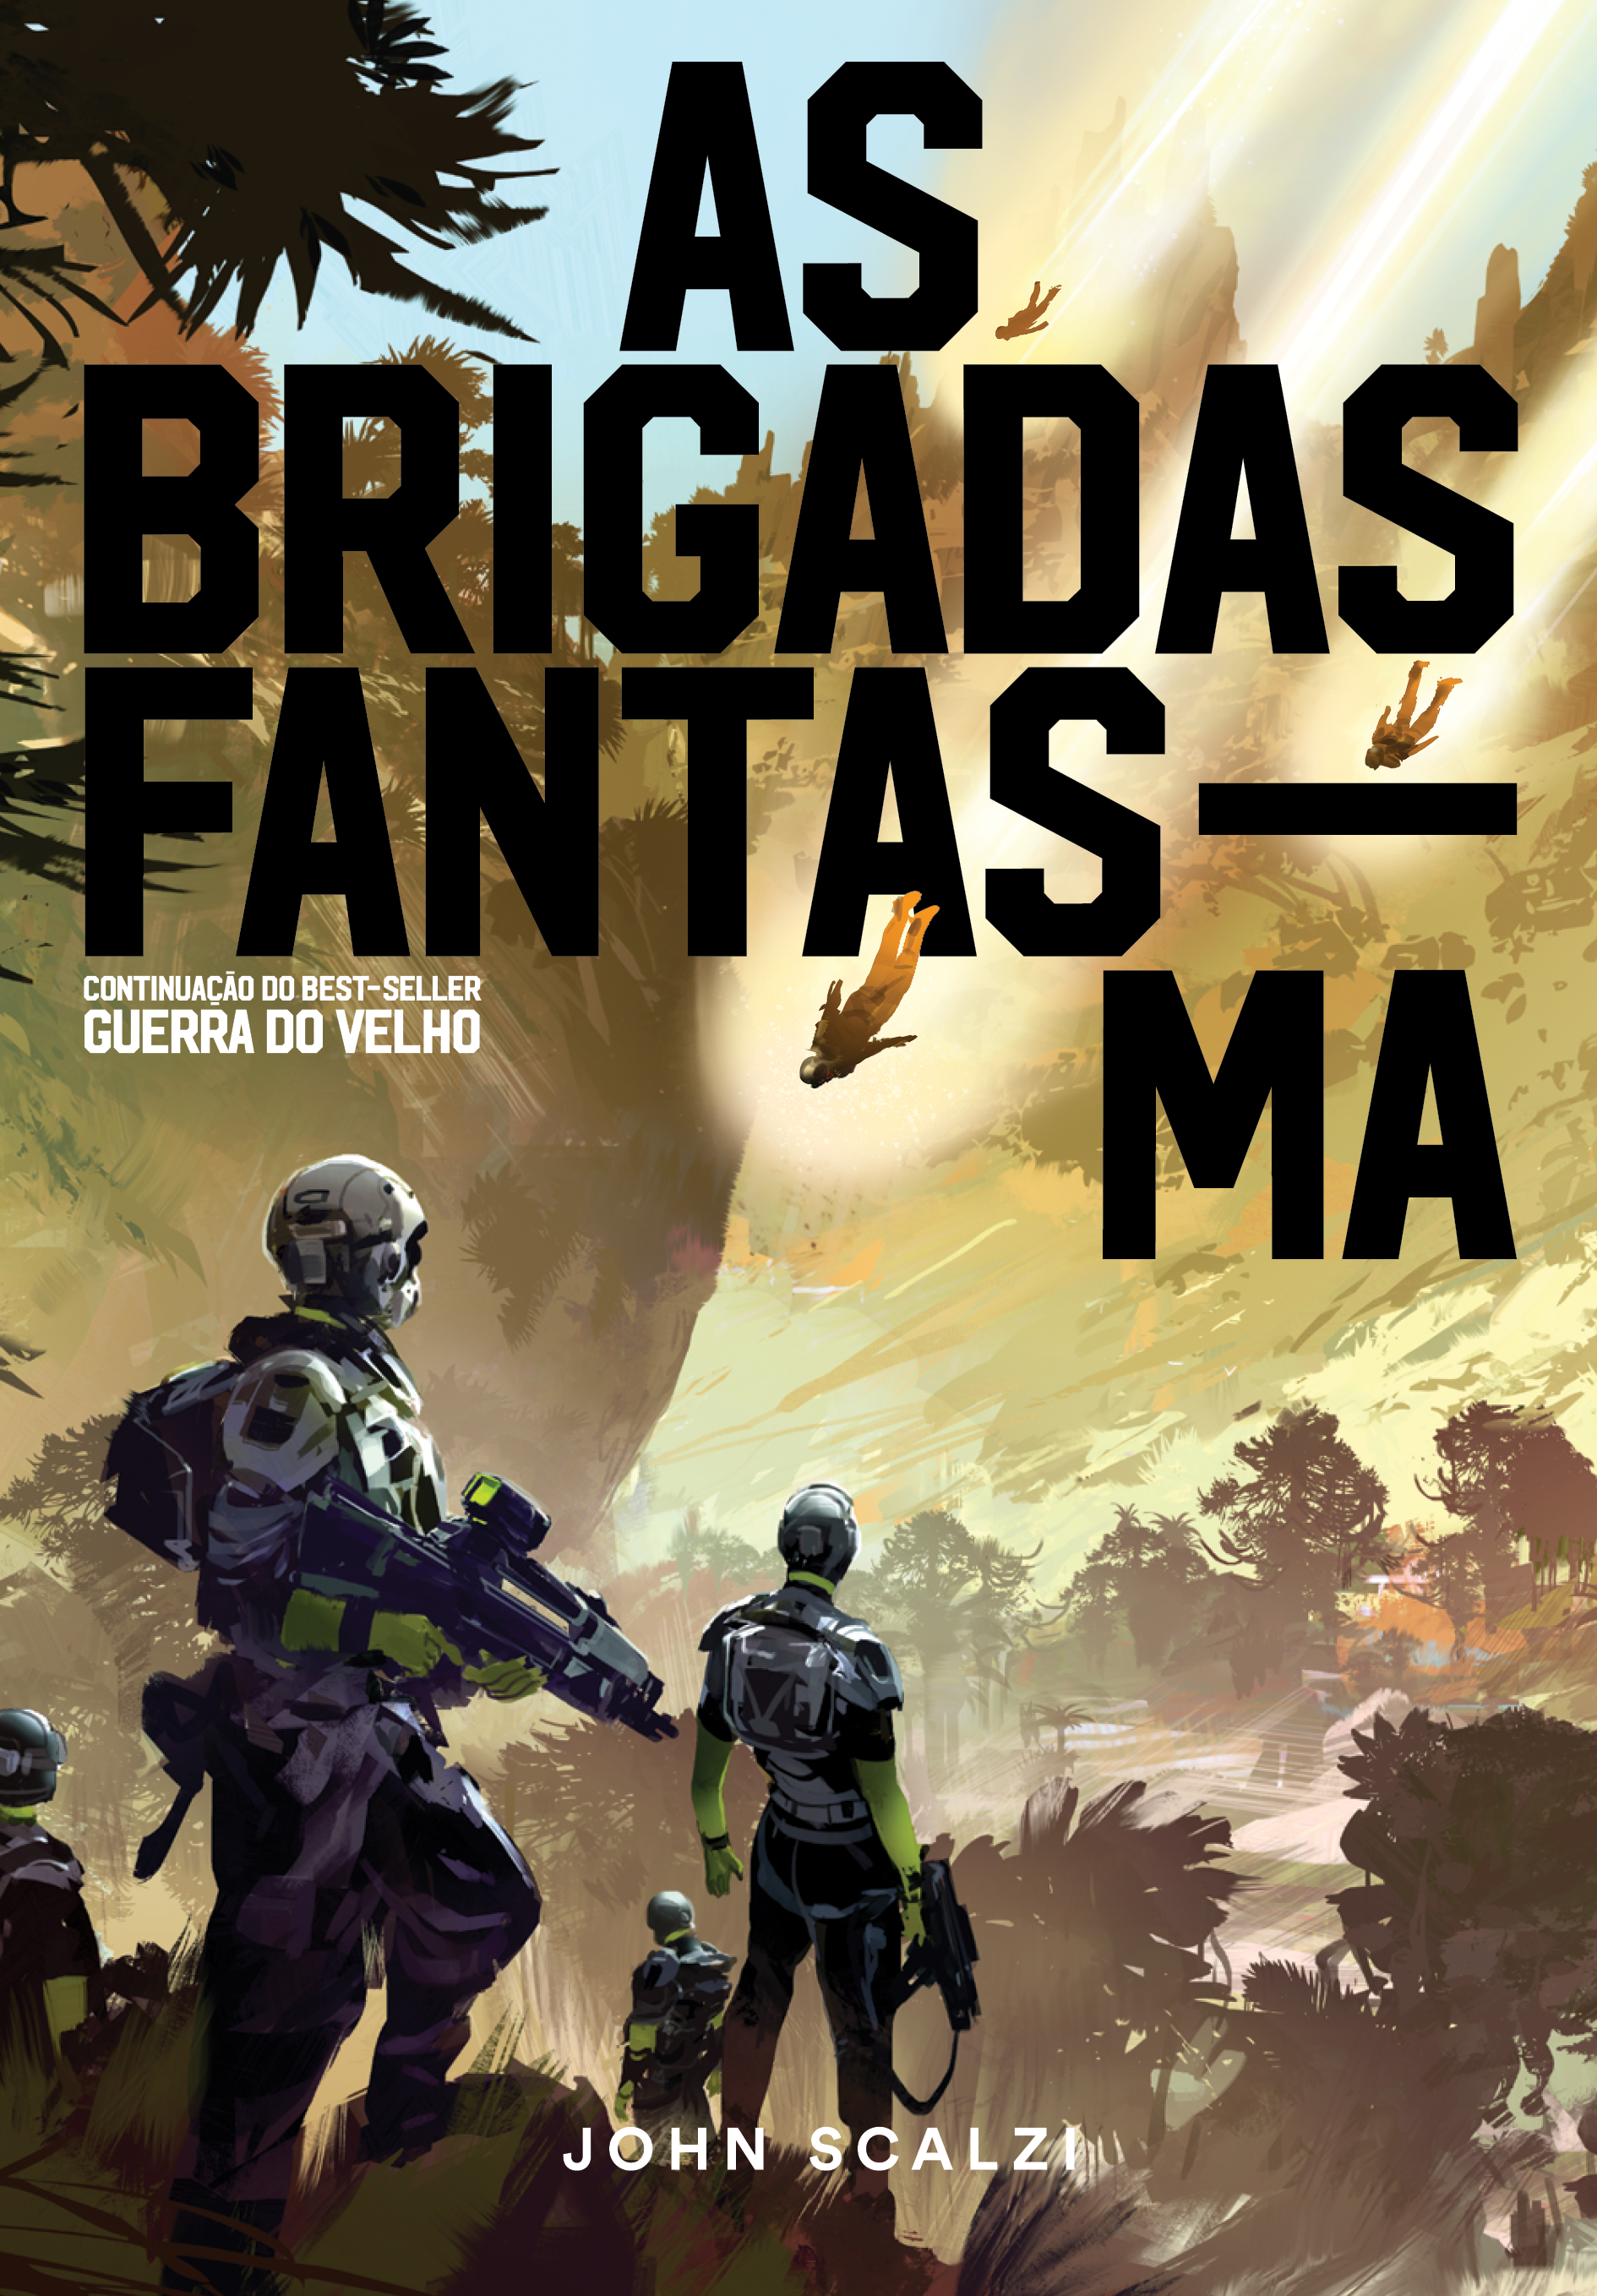 As brigadas fantasma (Guerra do velho #2)